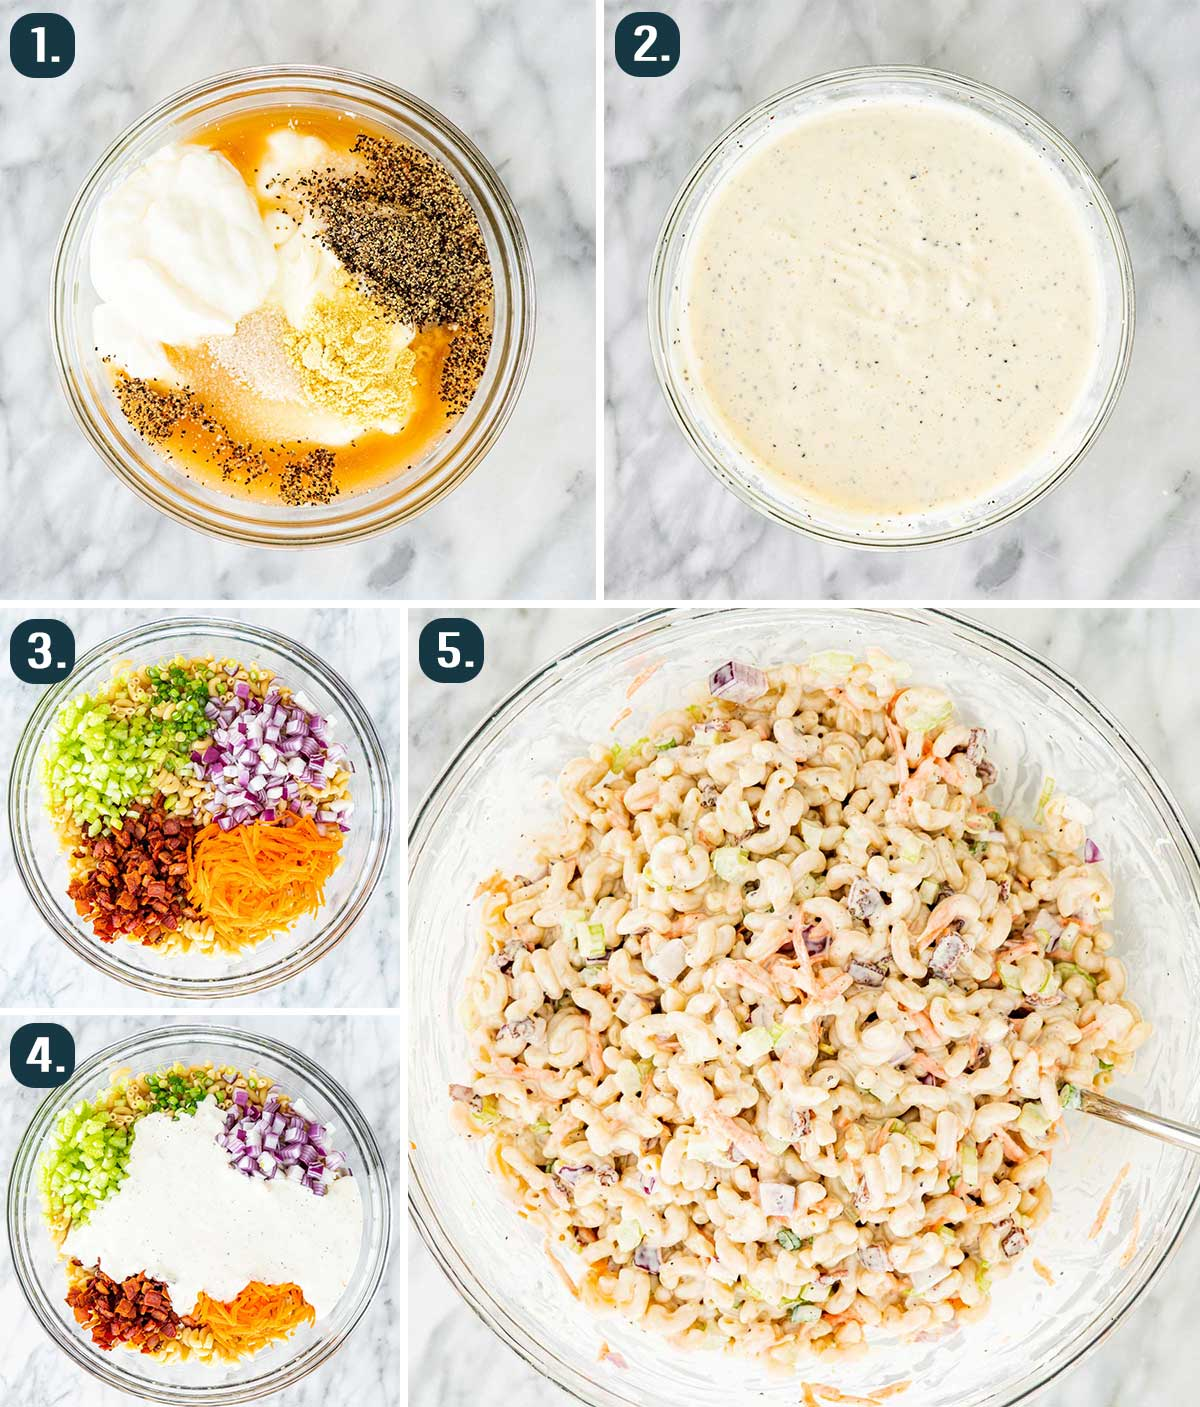 process shots showing how to make macaroni salad